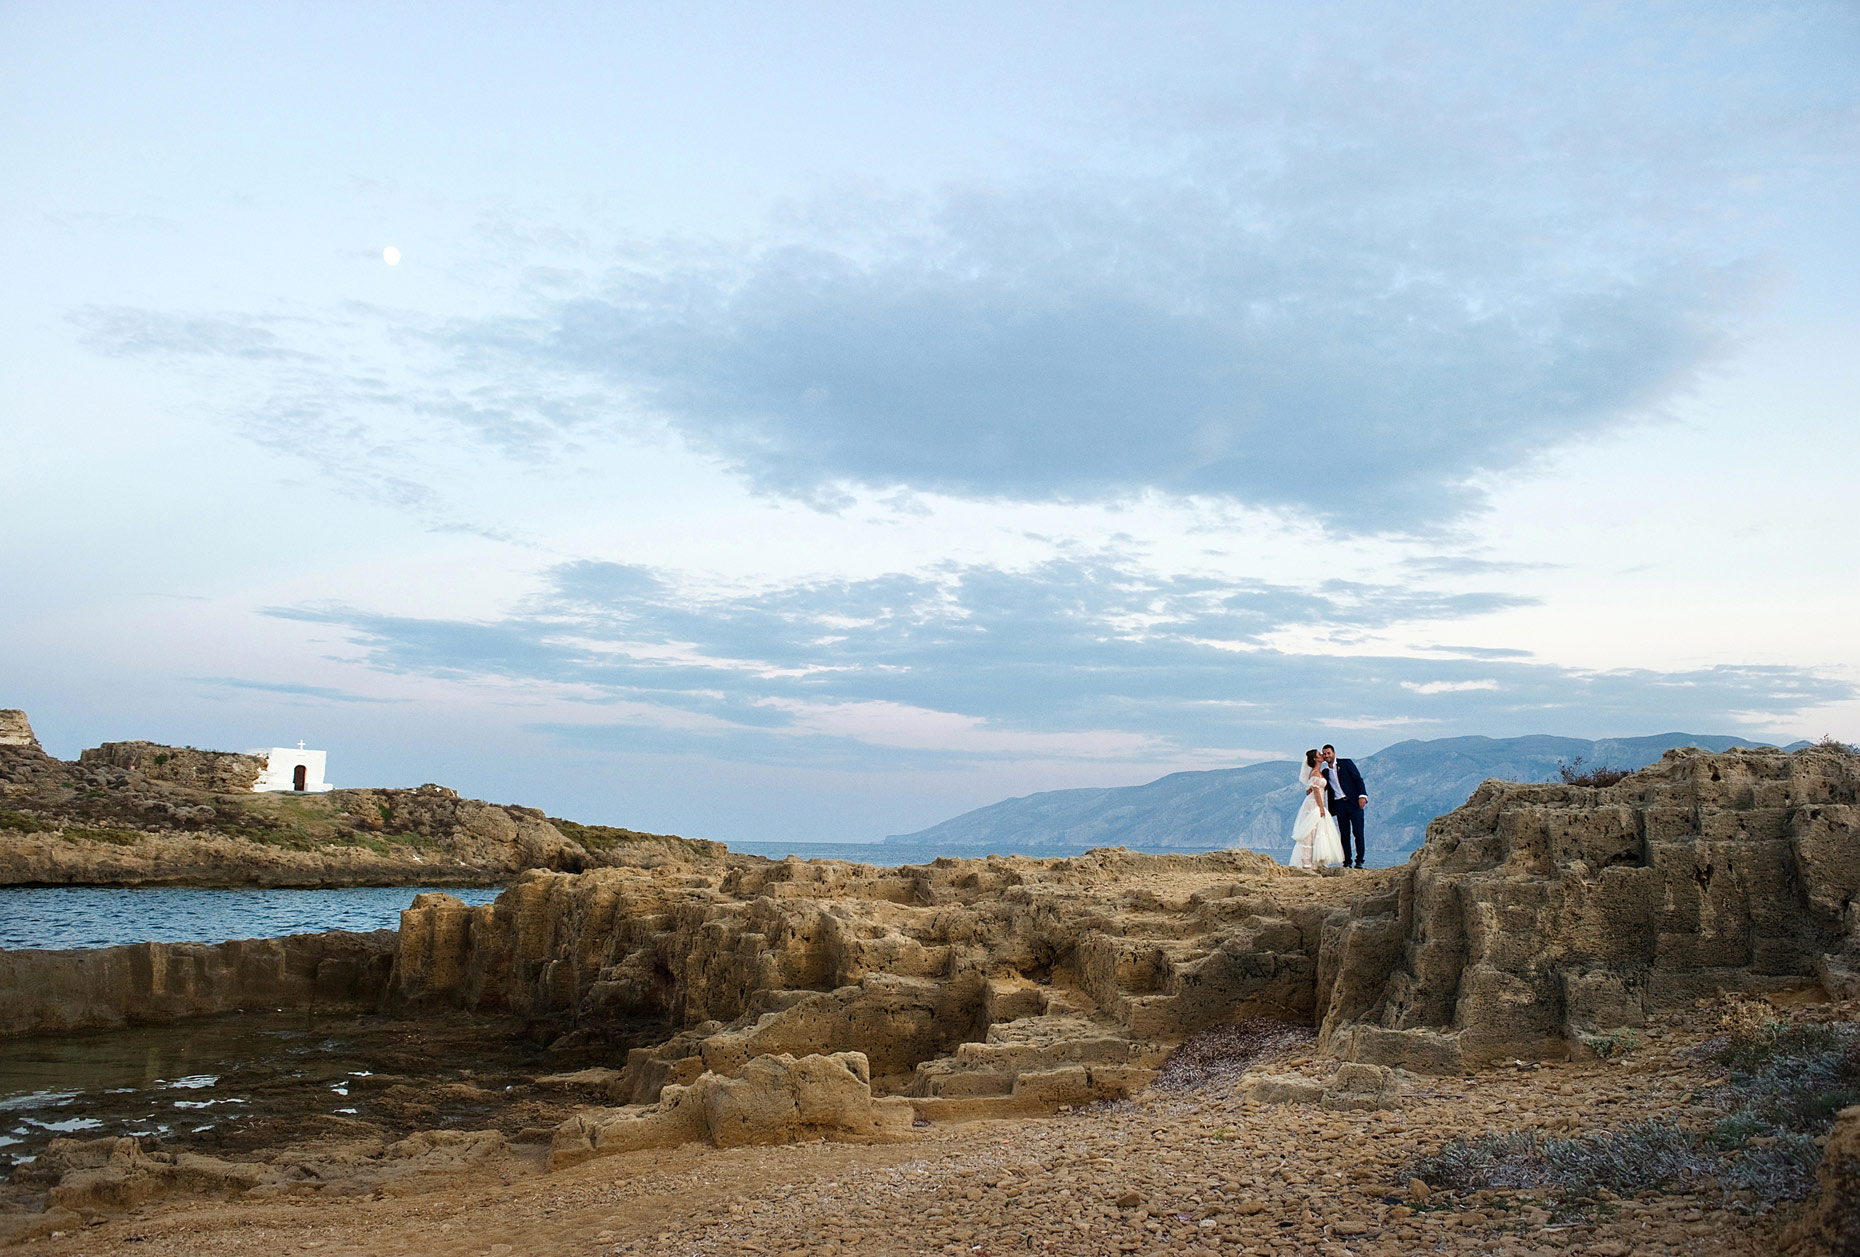 Destination wedding photographer based in Athens